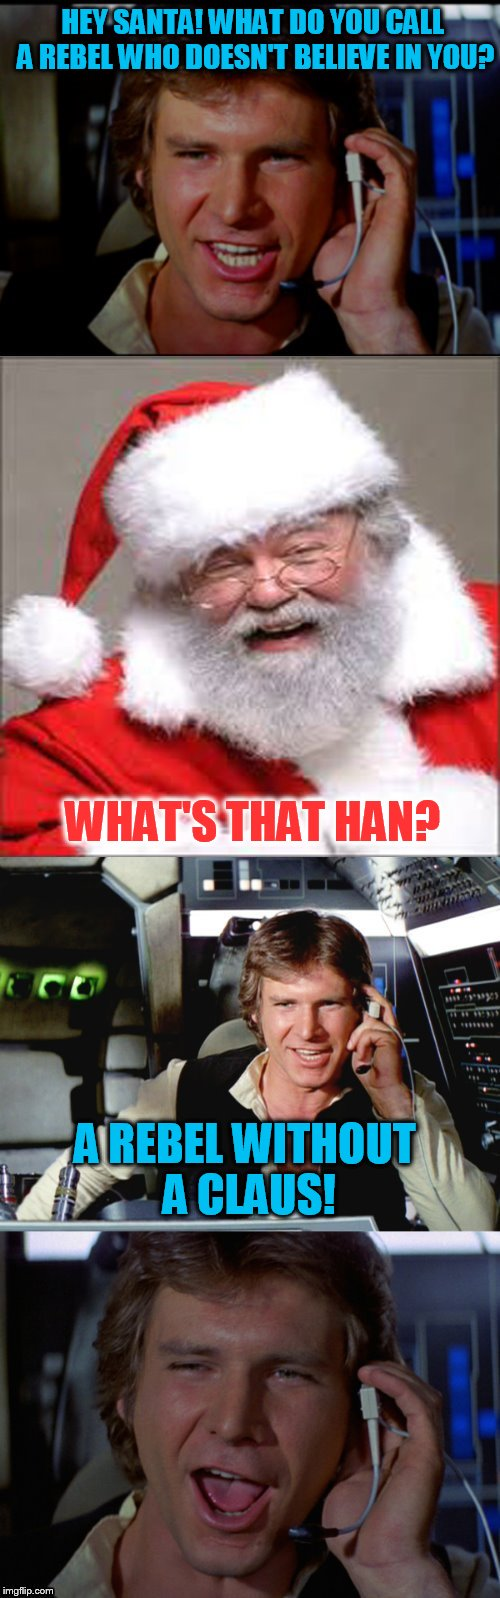 The 23 Memes Till Christmas Event (I shall be doing one Christmas meme a day till Christmas :)  | HEY SANTA! WHAT DO YOU CALL A REBEL WHO DOESN'T BELIEVE IN YOU? A REBEL WITHOUT A CLAUS! WHAT'S THAT HAN? | image tagged in bad pun han solo,christmas memes,funny,starwars,santa clause,jokes | made w/ Imgflip meme maker